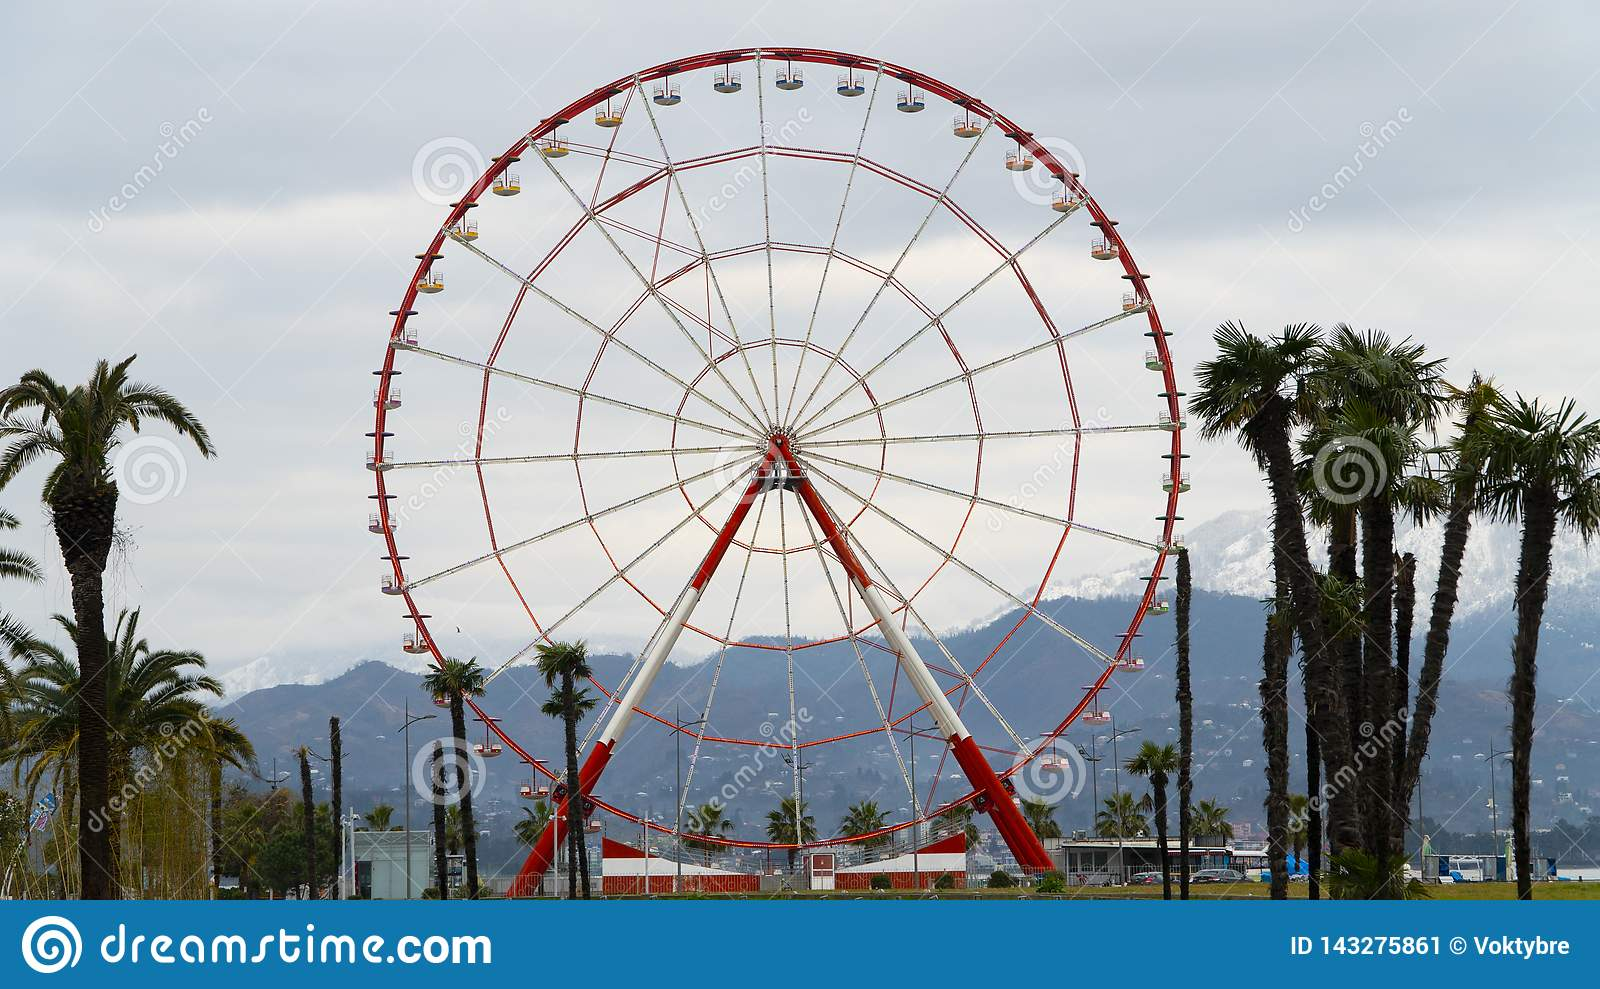 Ferris wheel on the coast of the Black Sea in Batumi on the background of mountains